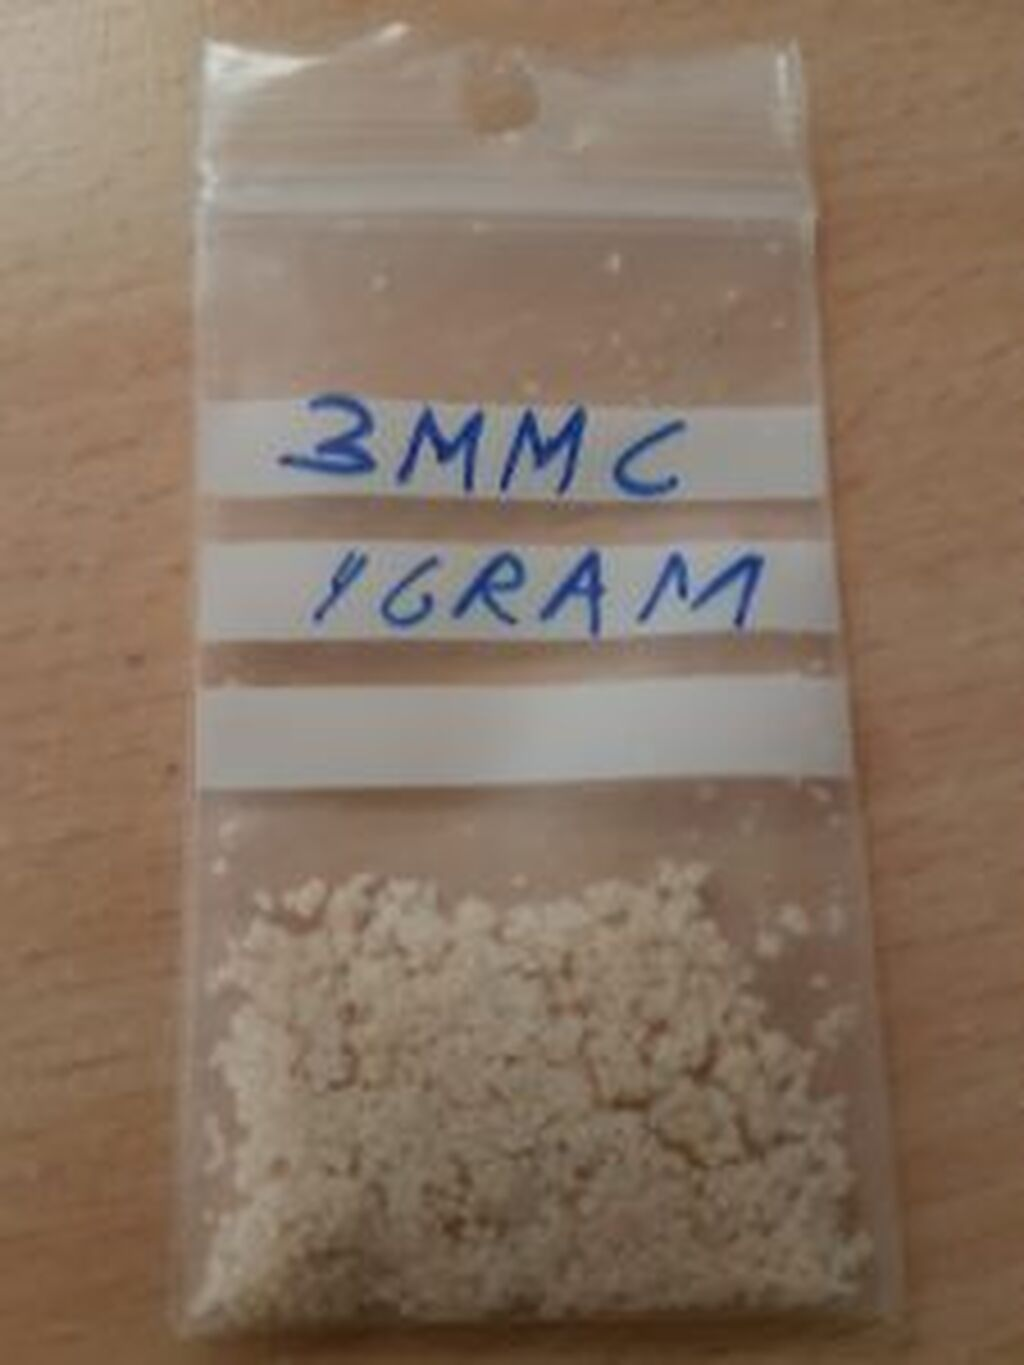 Buy high quality 2CI, 2CP,2CE ,2CB,Mephedrone Ketamine Heroine cocaine ,5-Meo-DMT 4-Aco-DMT 4-Ho-MIPT Mdma and BK mdma crystals and powder methylone Instant customer support OR Email  marthaperres90@gmail